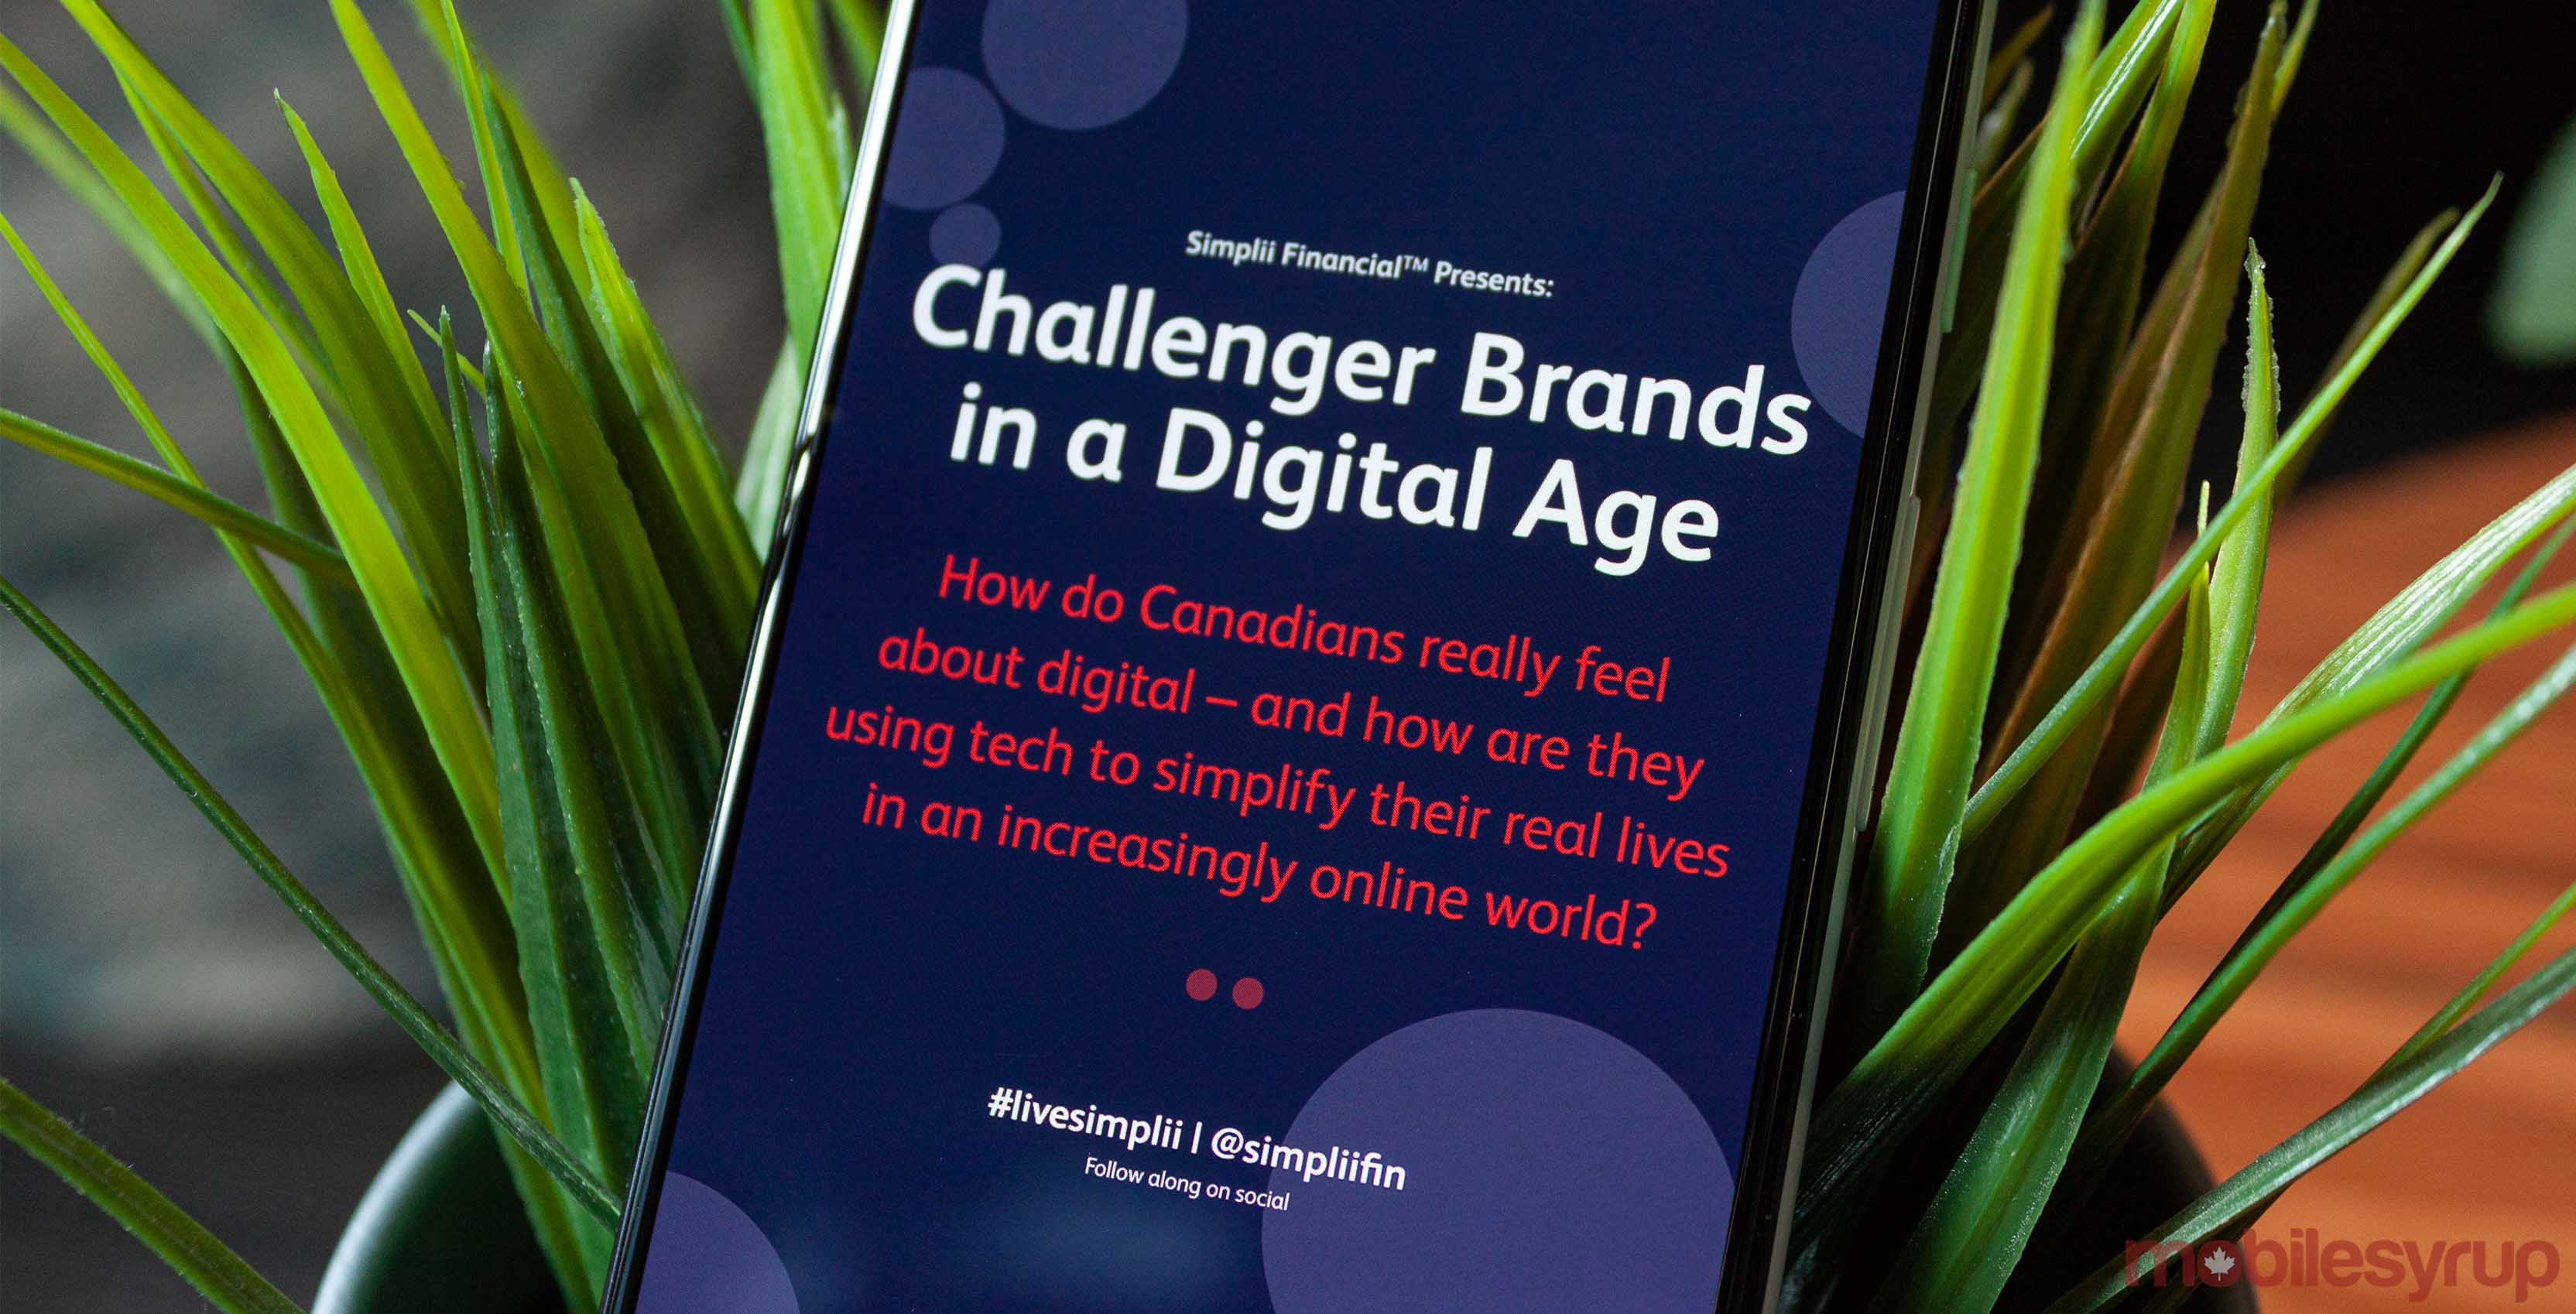 Attend this Toronto event if you want to learn about brands in the digital age